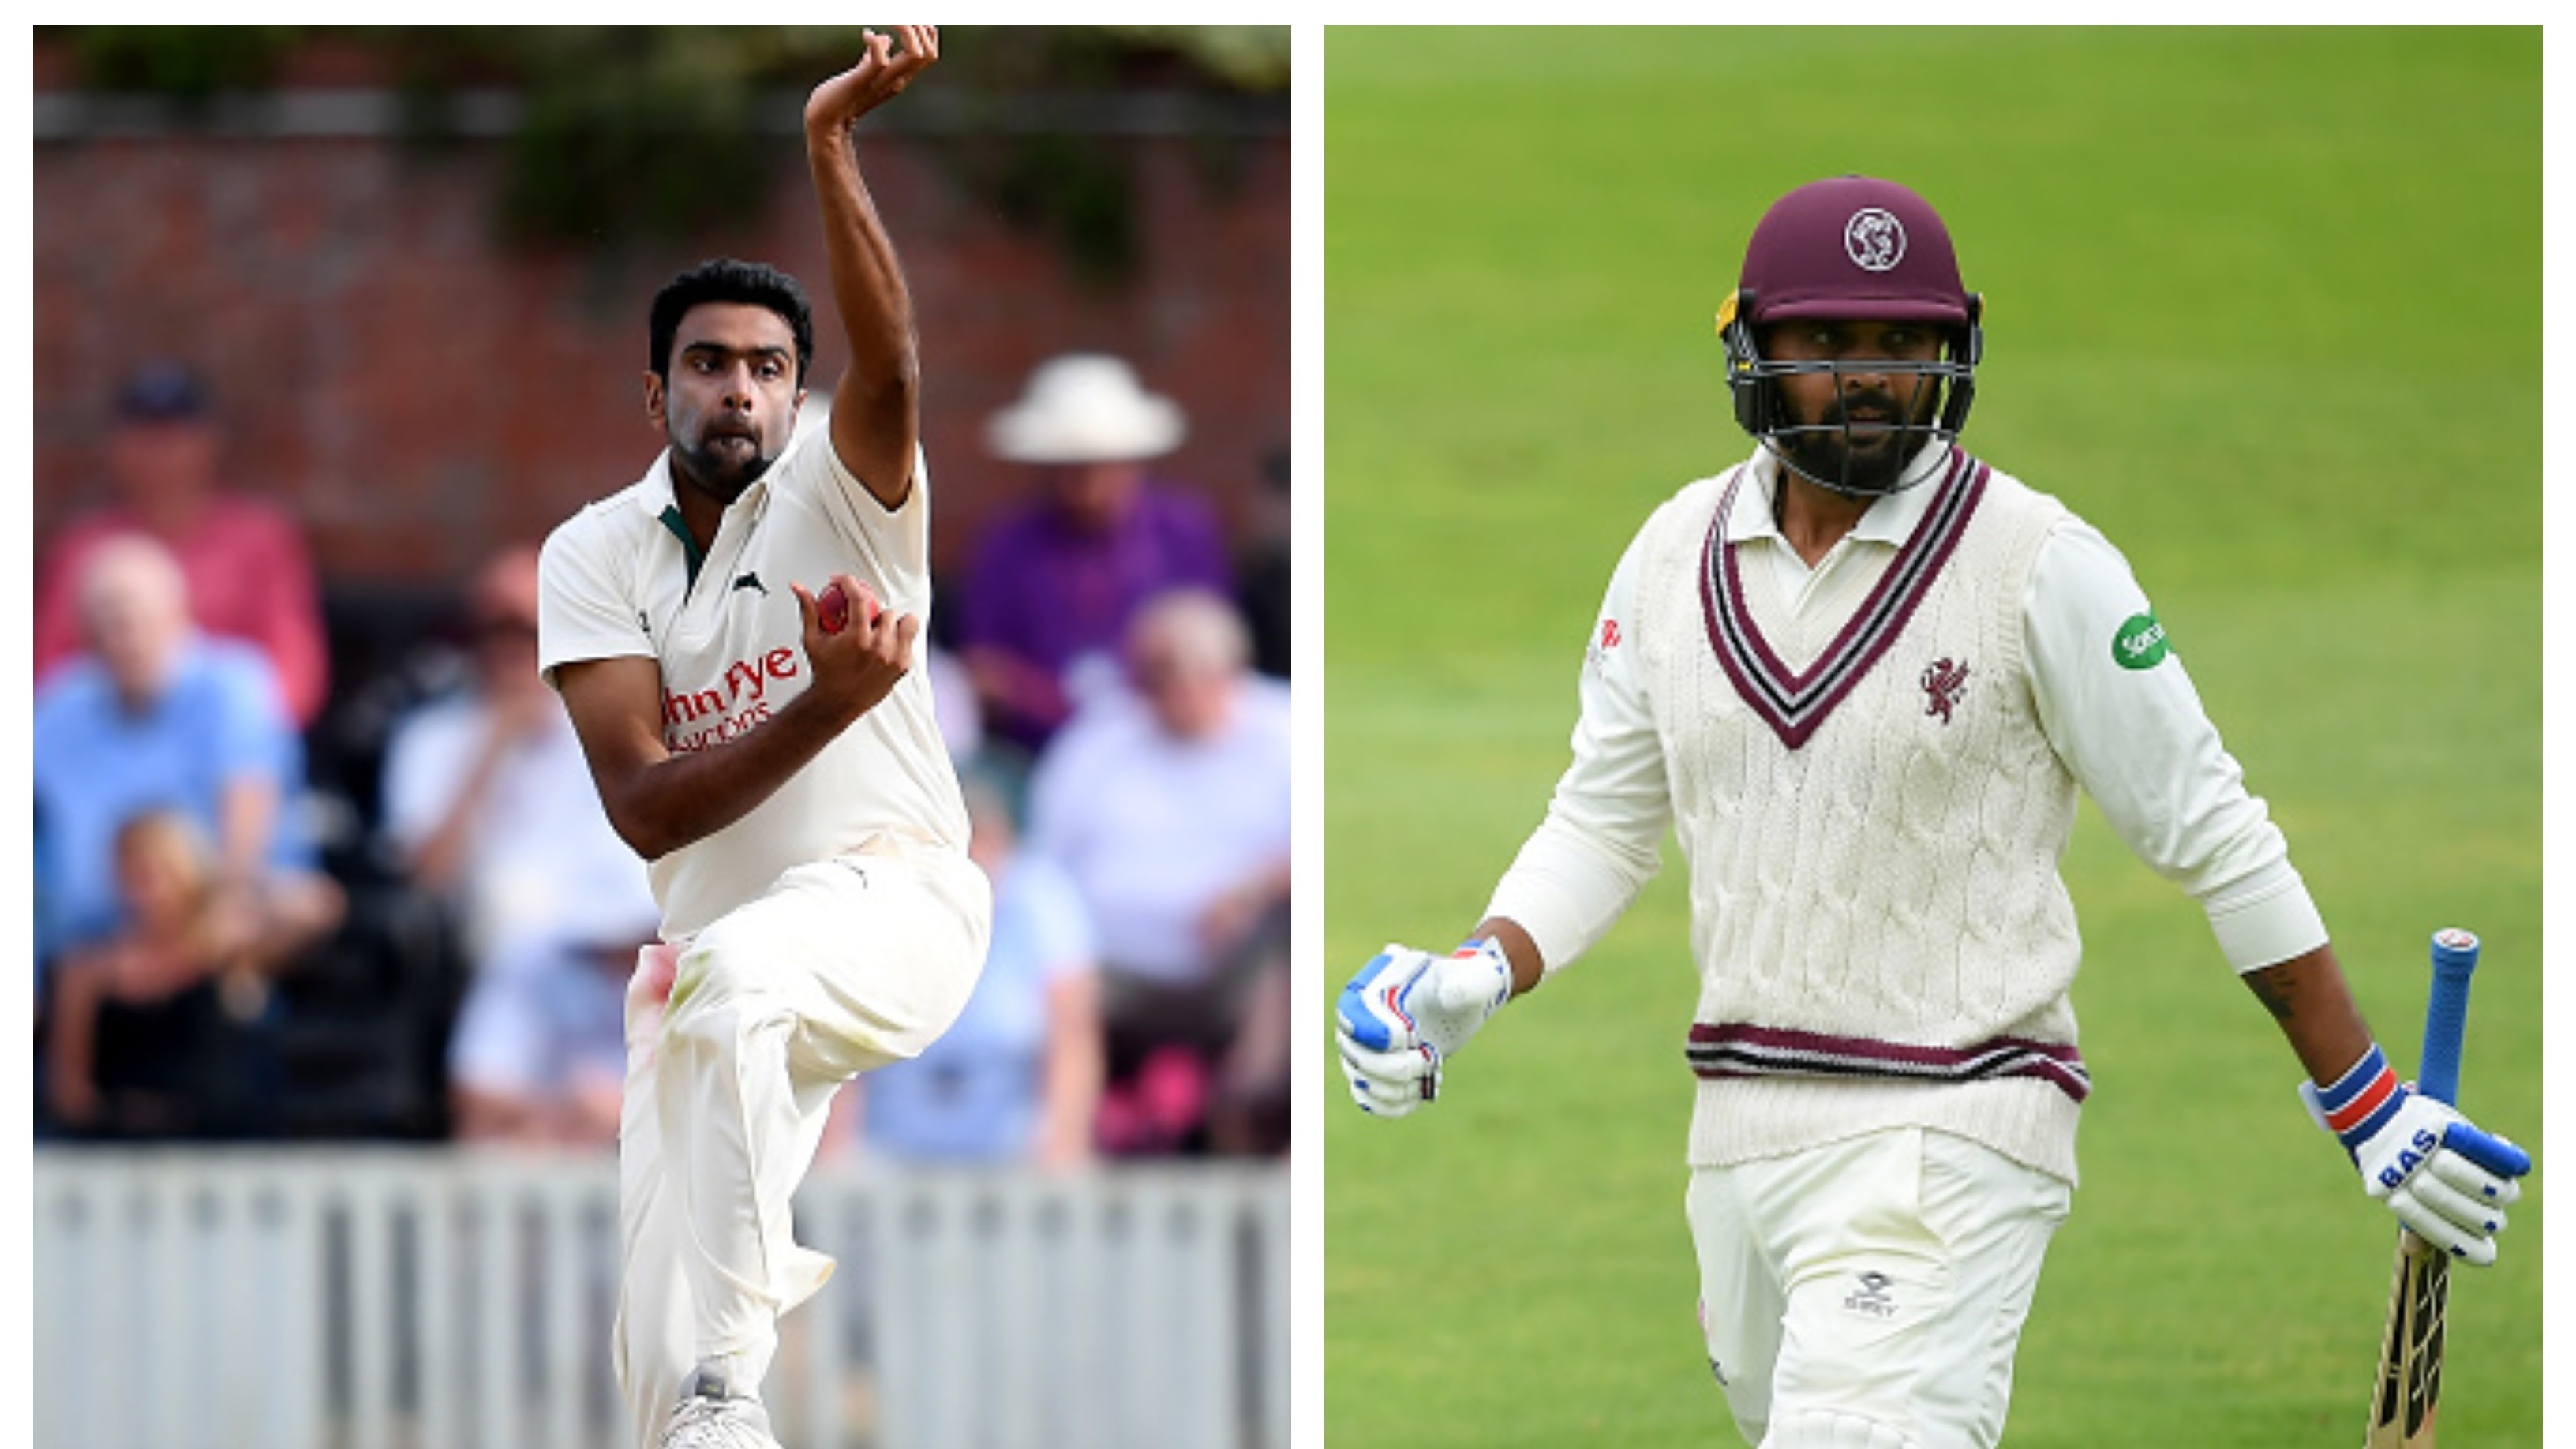 R Ashwin bags his fourth five-fer, while M Vijay struggles again in the County Championship